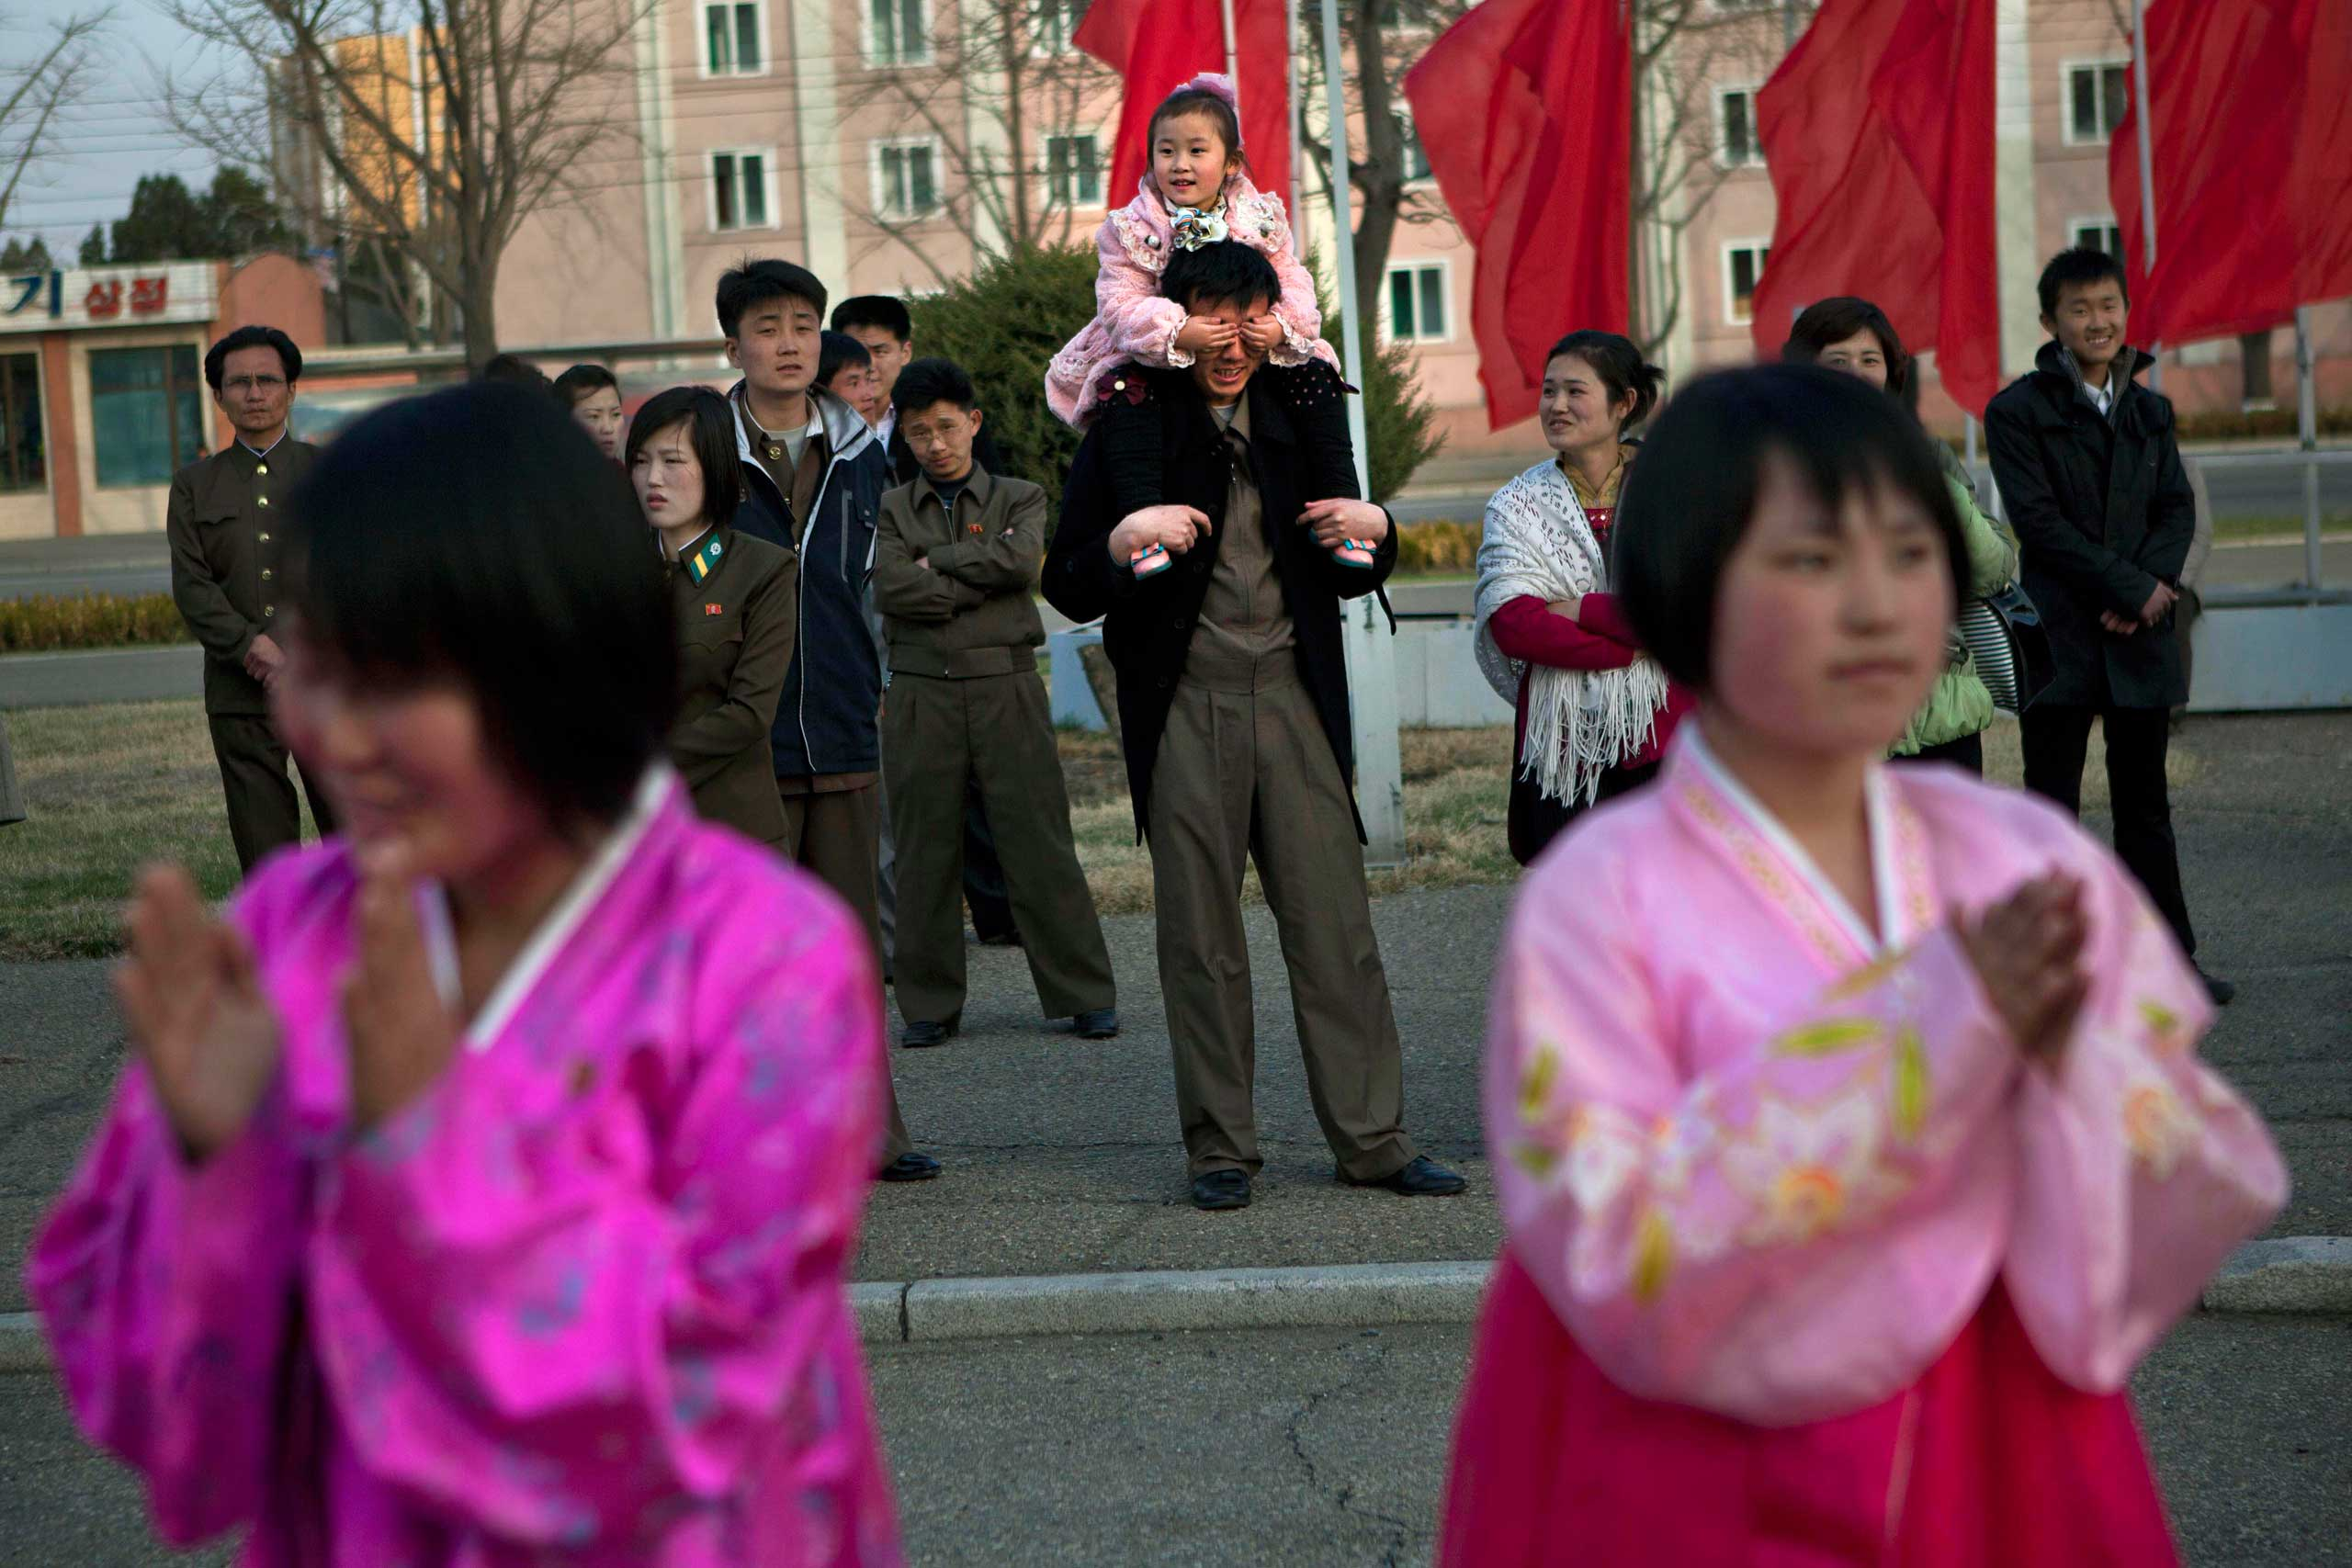 April 15, 2013. A North Korean child covers the eyes of her father as she sits on his shoulders watching mass folk dancing in front of Pyongyang Indoor Stadium in Pyongyang, North Korea.